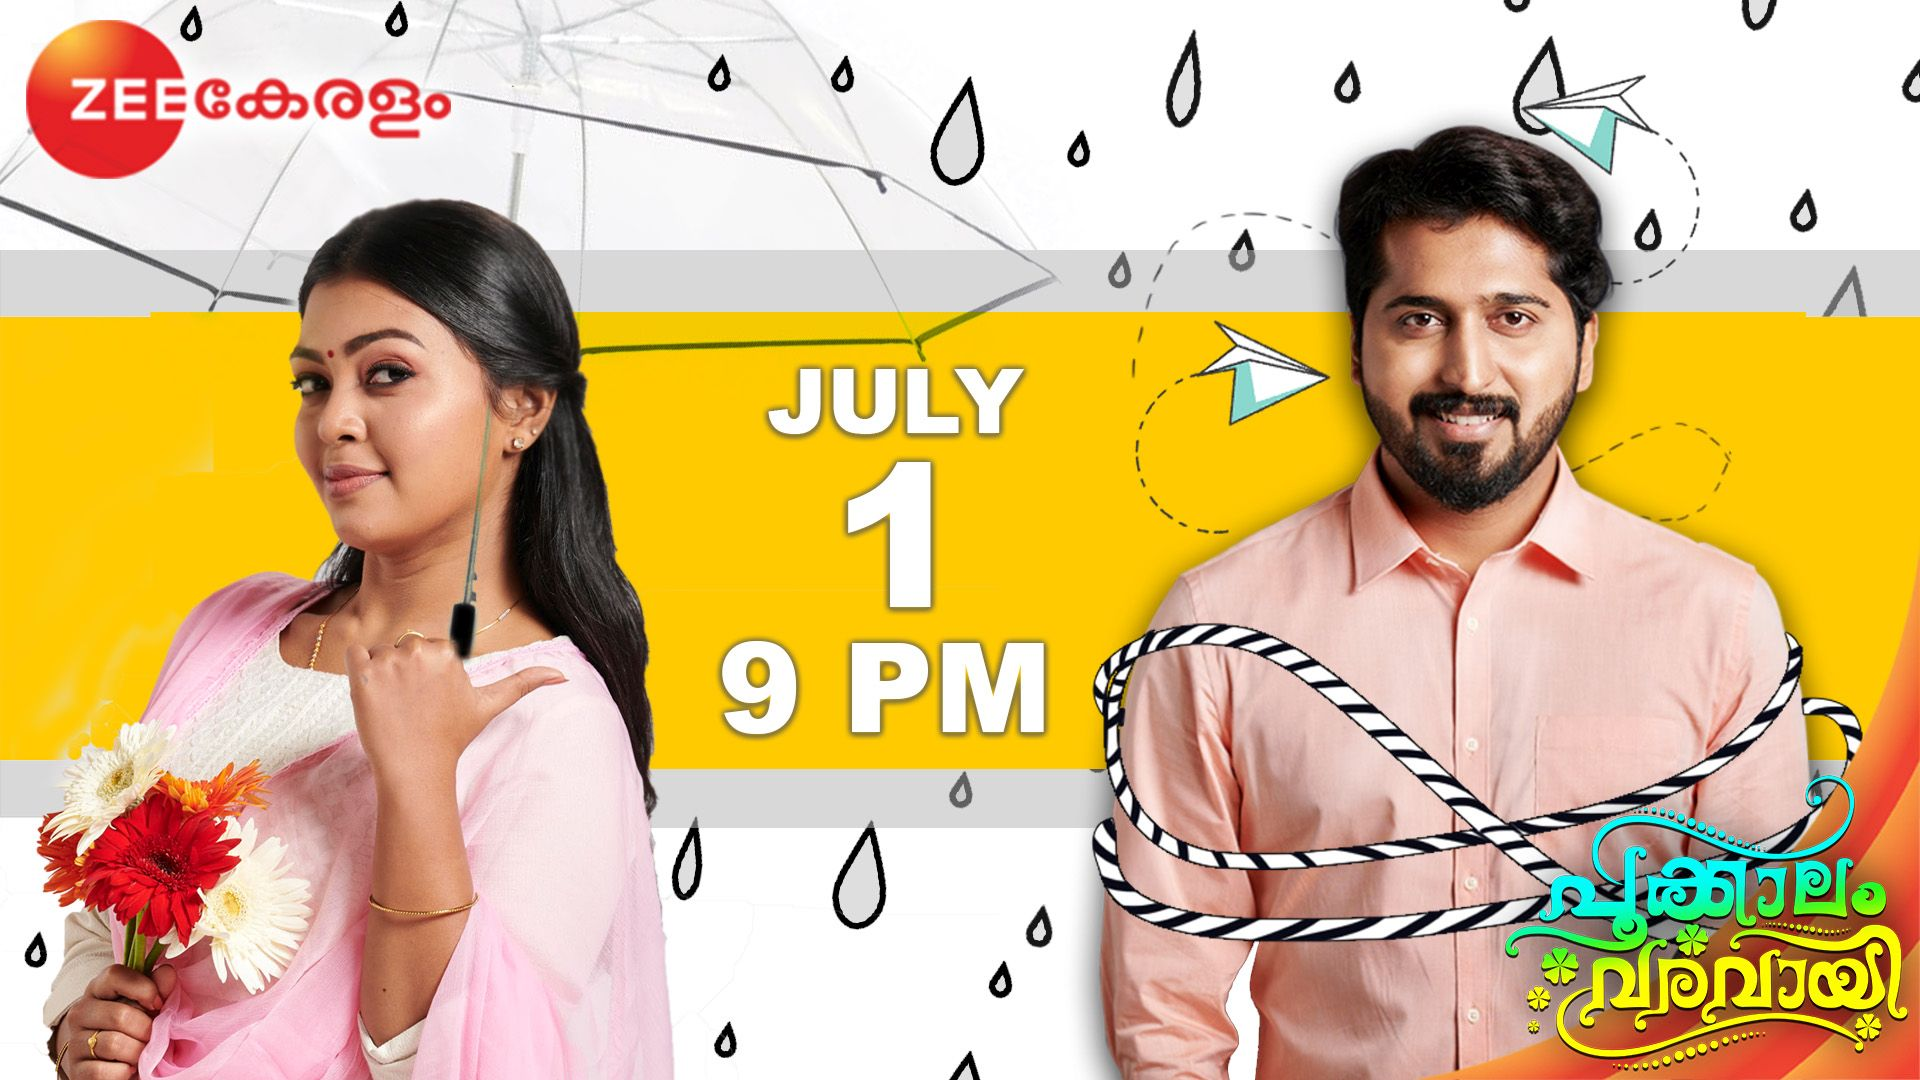 Pookalam Varavayi – Premiering on 1st July 2019 at 9 00 pm on zee